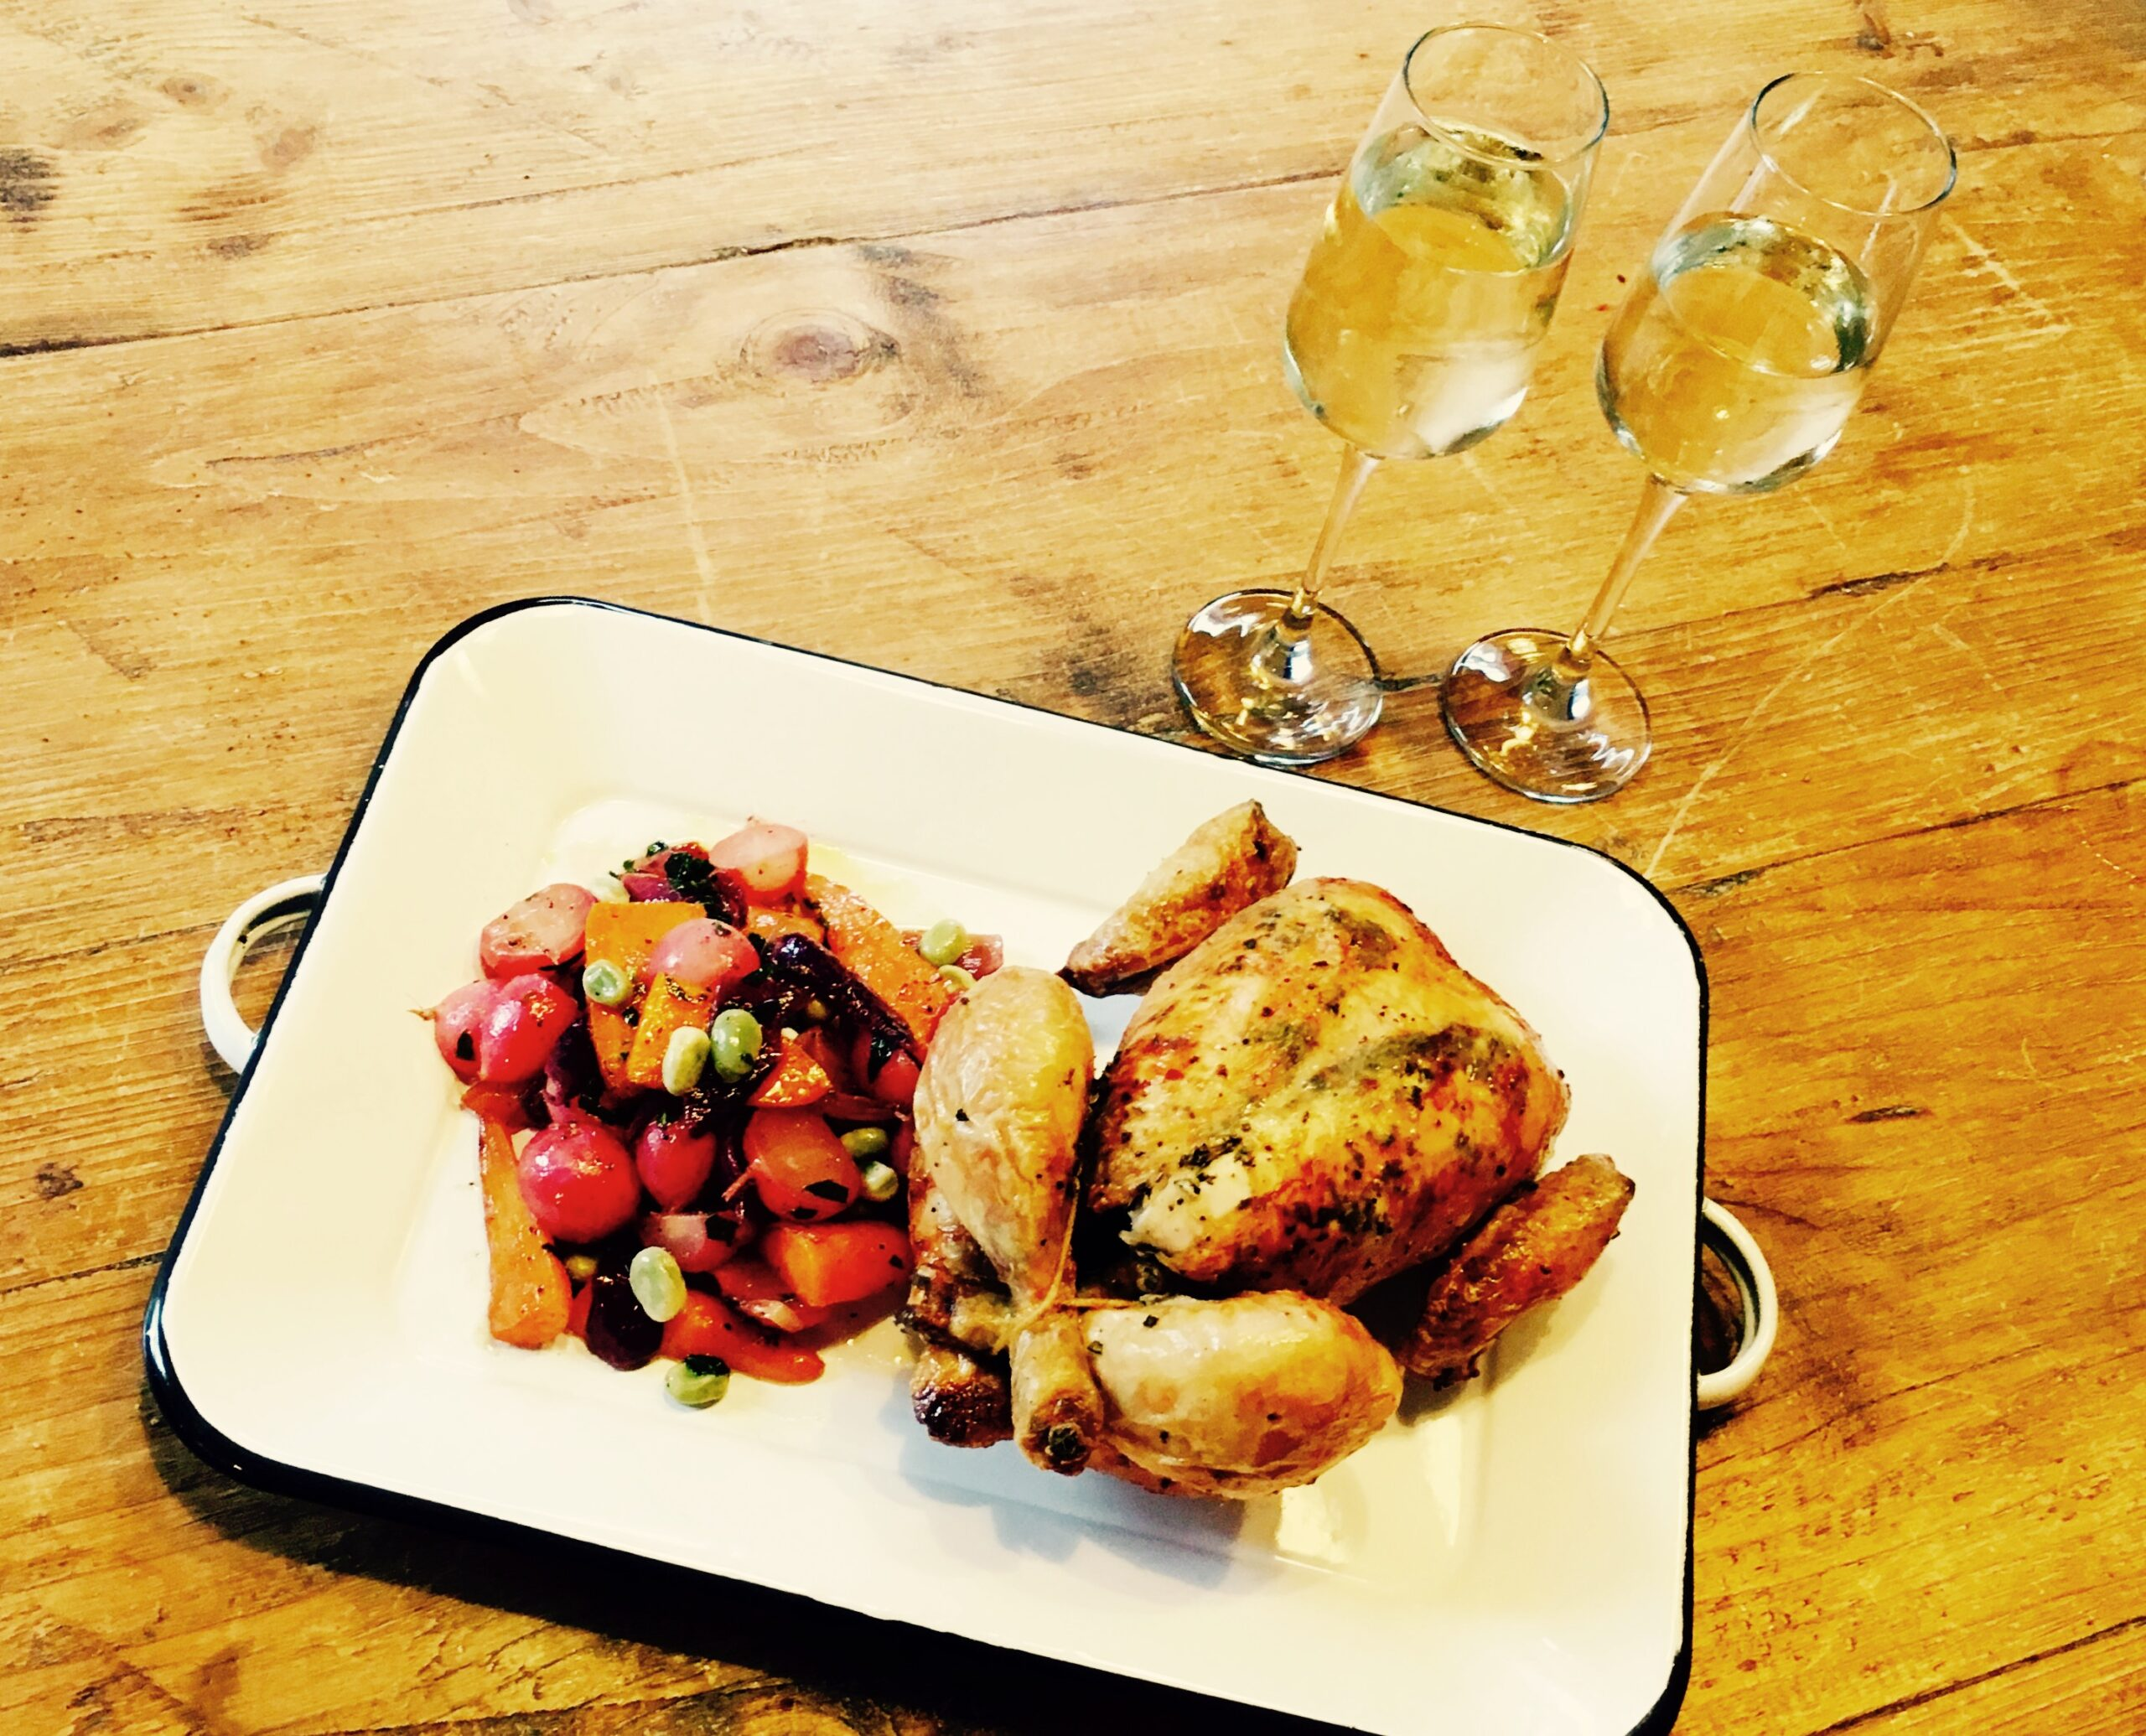 Roast Chicken with Summer Glazed Vegetables